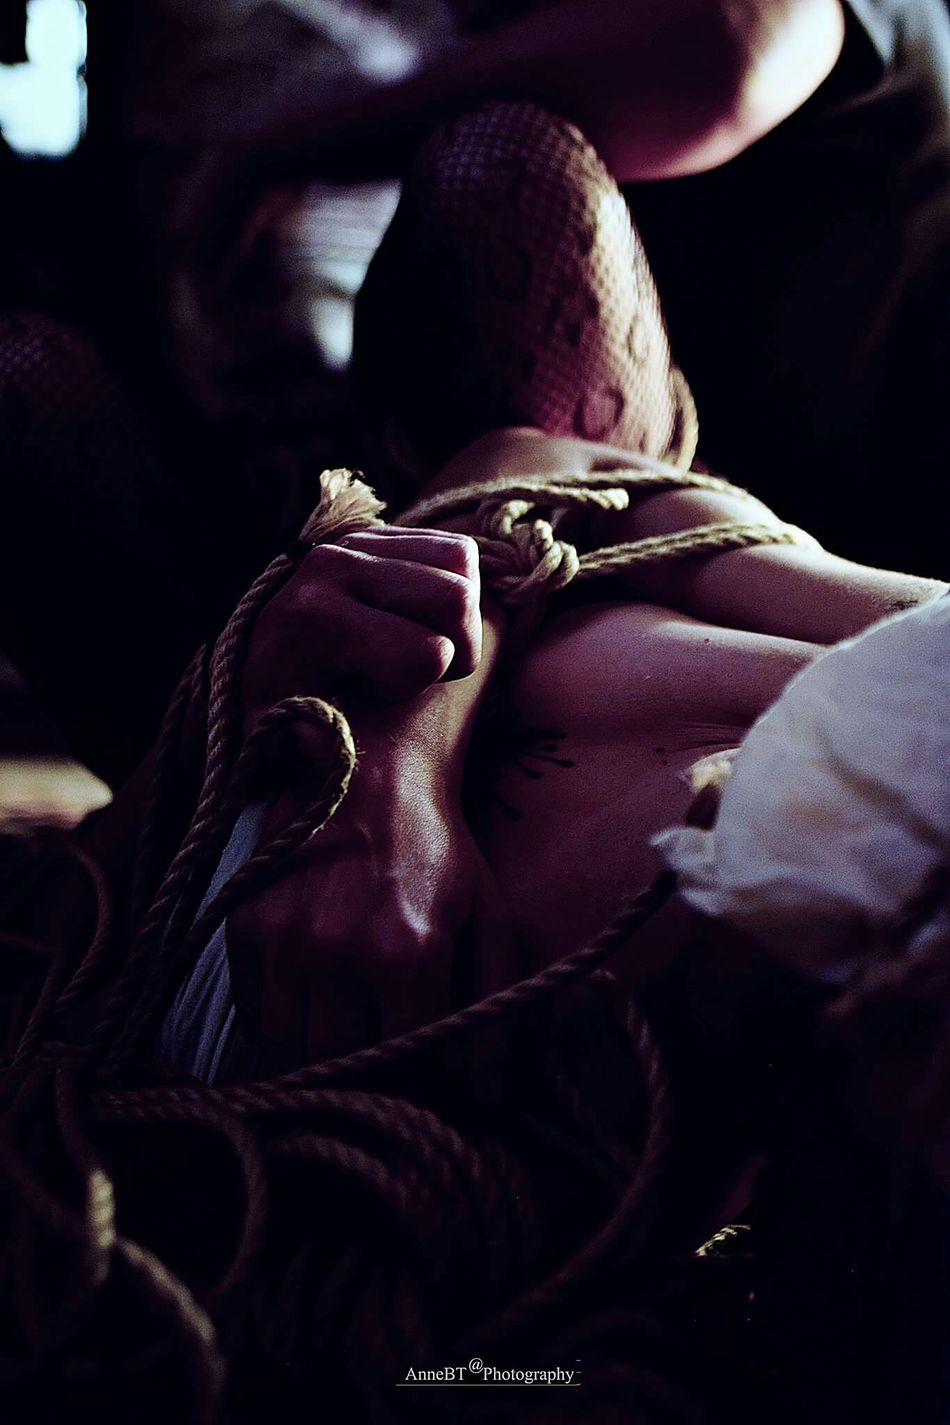 """Shibari, ropes"" Shibary Ropes Reflection EyeEmNewHere Fantasy Dreaming My Fantastic World Nikonphotographer EyeEmBestEdits Nikon Photography Nikond3300 Nikon D3300 EyeEm Best Shots Magic Moments Make Magic Happen Women Who Inspire You Womensfashion Womenpower Womens Fashion Party Time! Partyallnightlong Partyallnight"